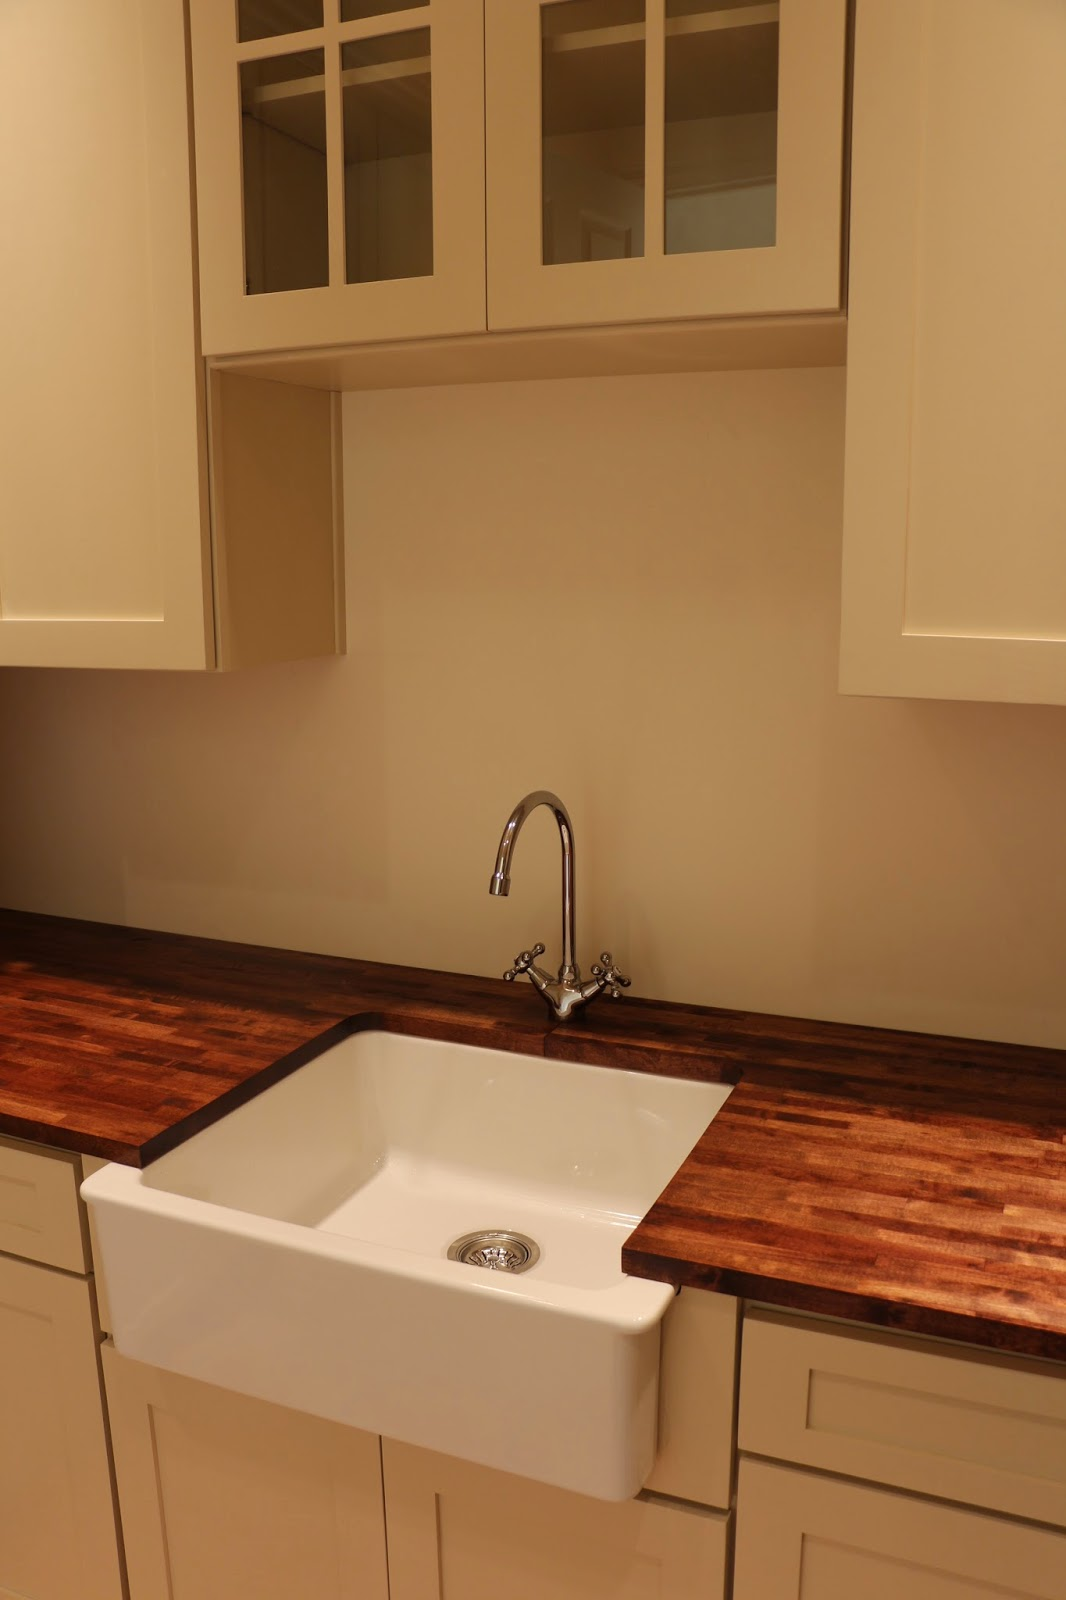 domsjo sink, farmhouse sink, wood countertops, varde countertops, ikea wood countertops